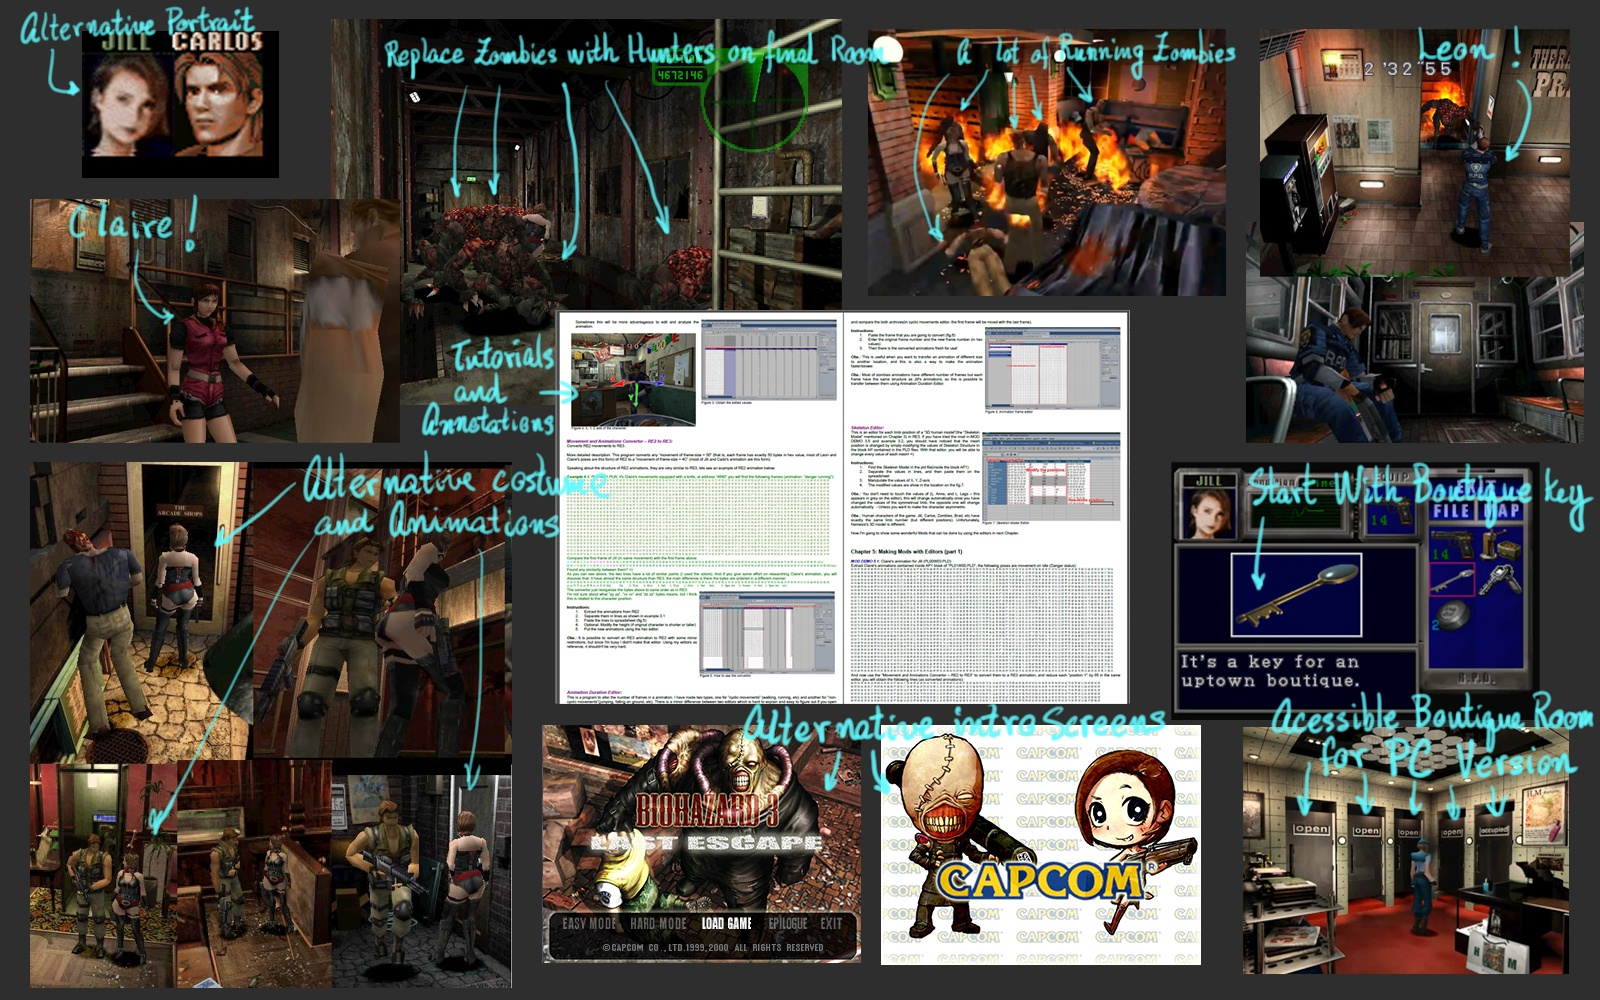 Resident Evil 3 Restoration Patch: a patch that brings in every PC